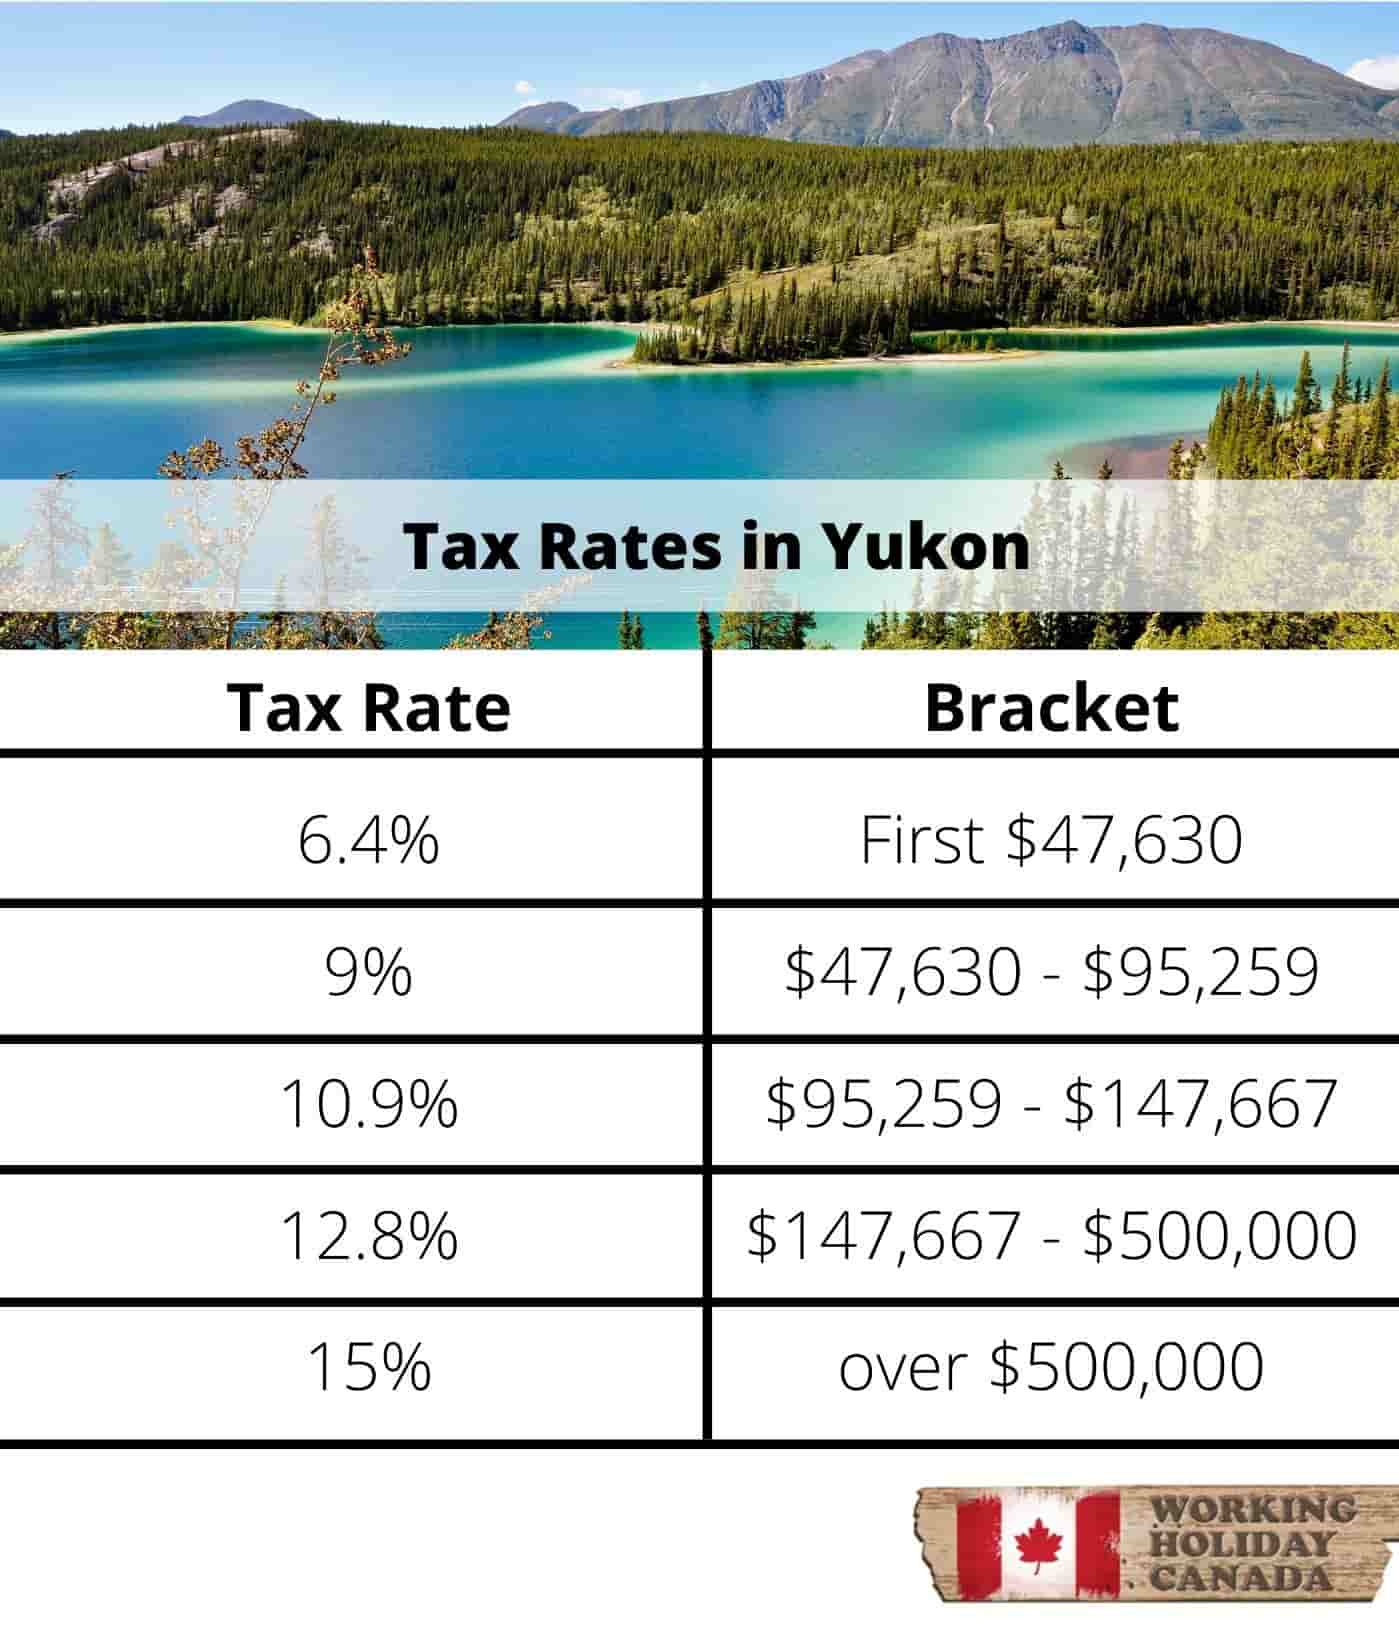 Yukon Tax Rates